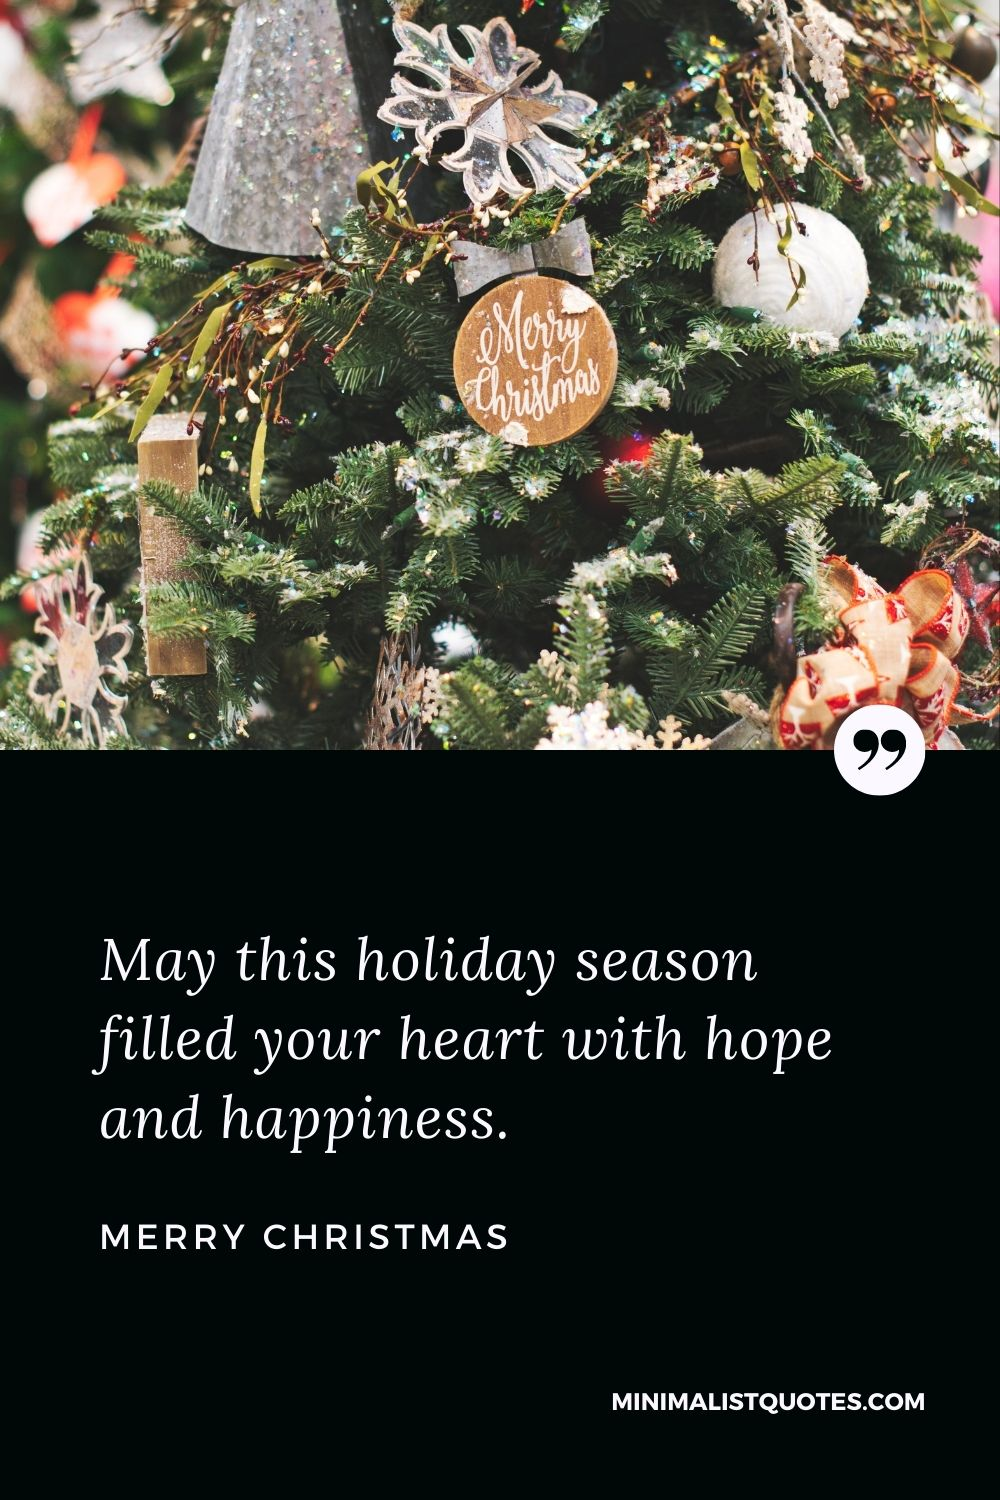 Merry Christmas Wish - May this holiday season filled your heart with hope and happiness.